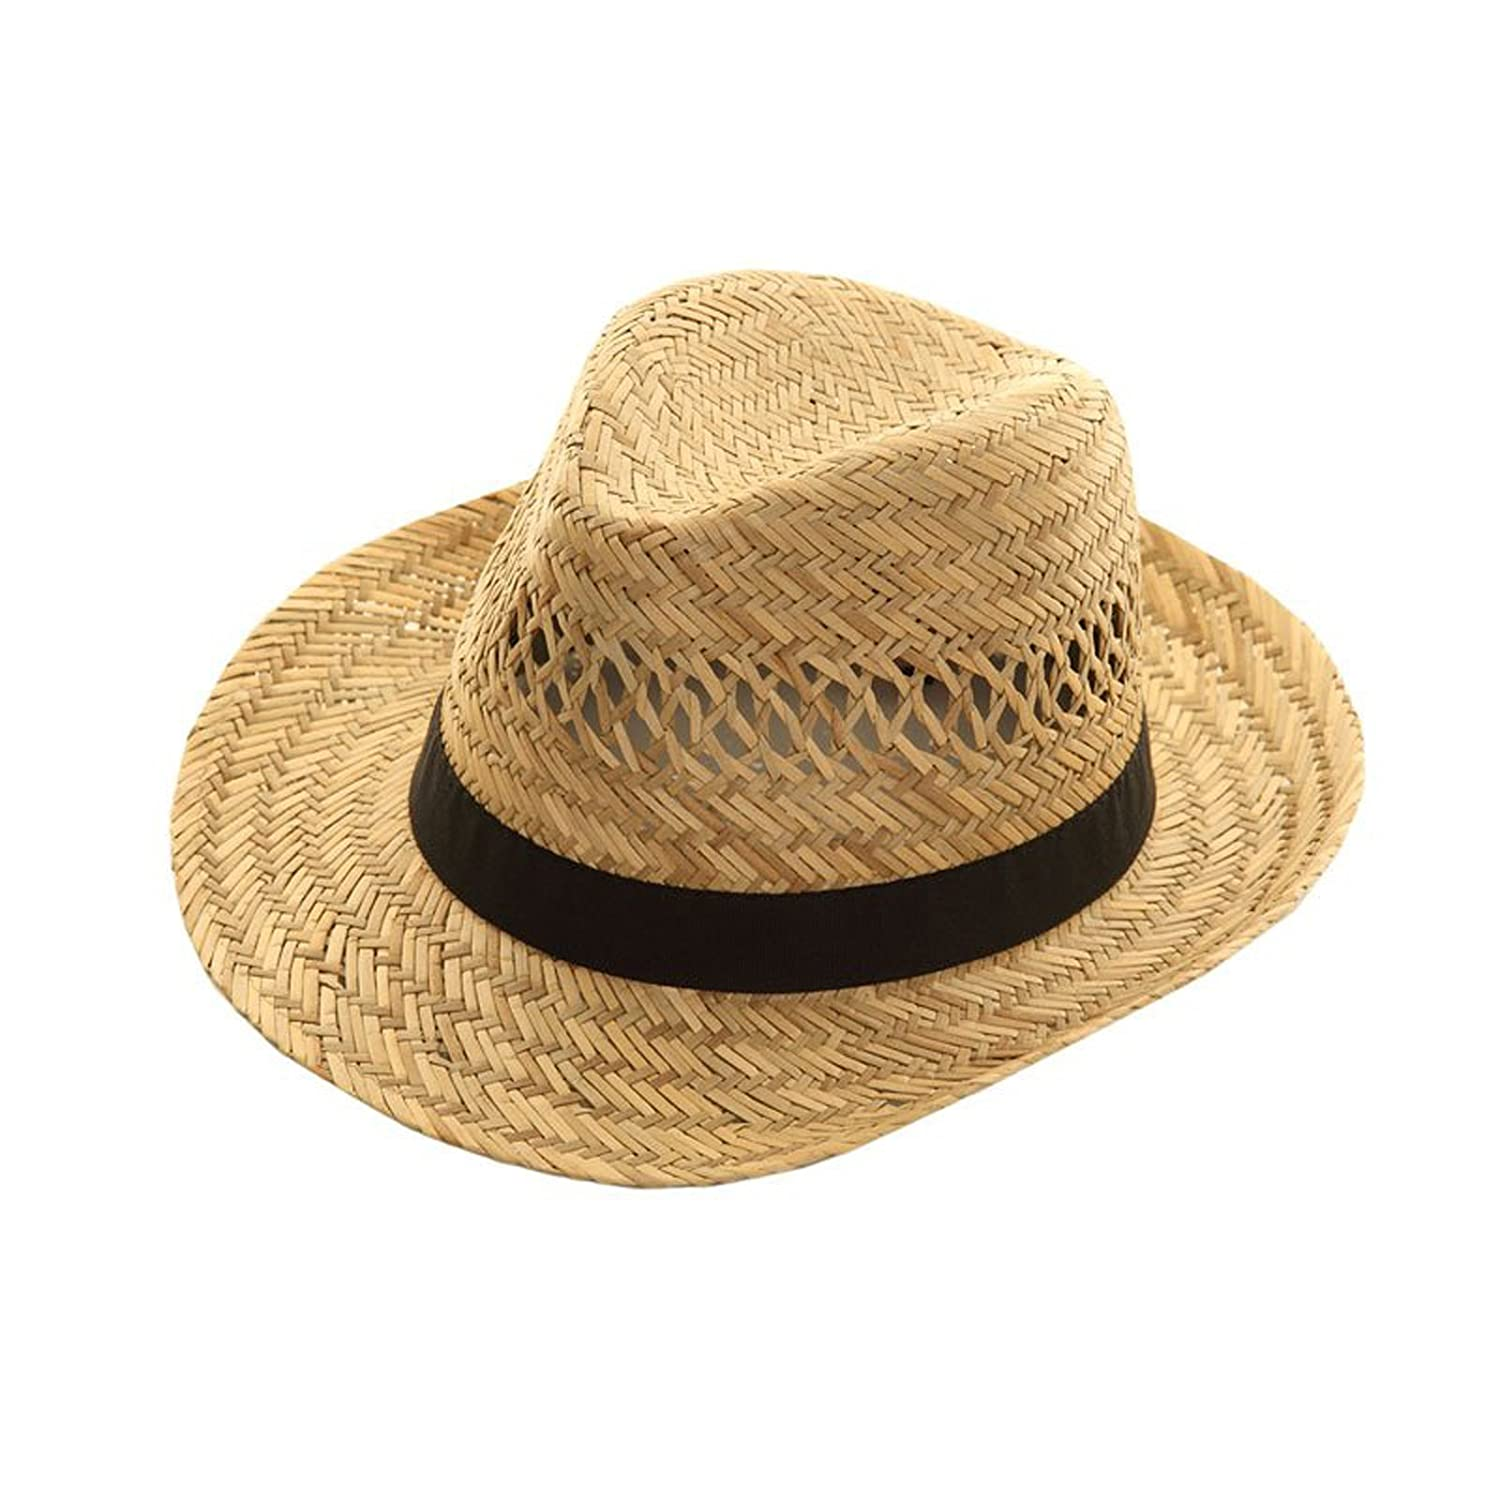 Top Brand Unisex Natural Straw Trilby Fedora Hat with a Black Band. d8e5bf2433d9